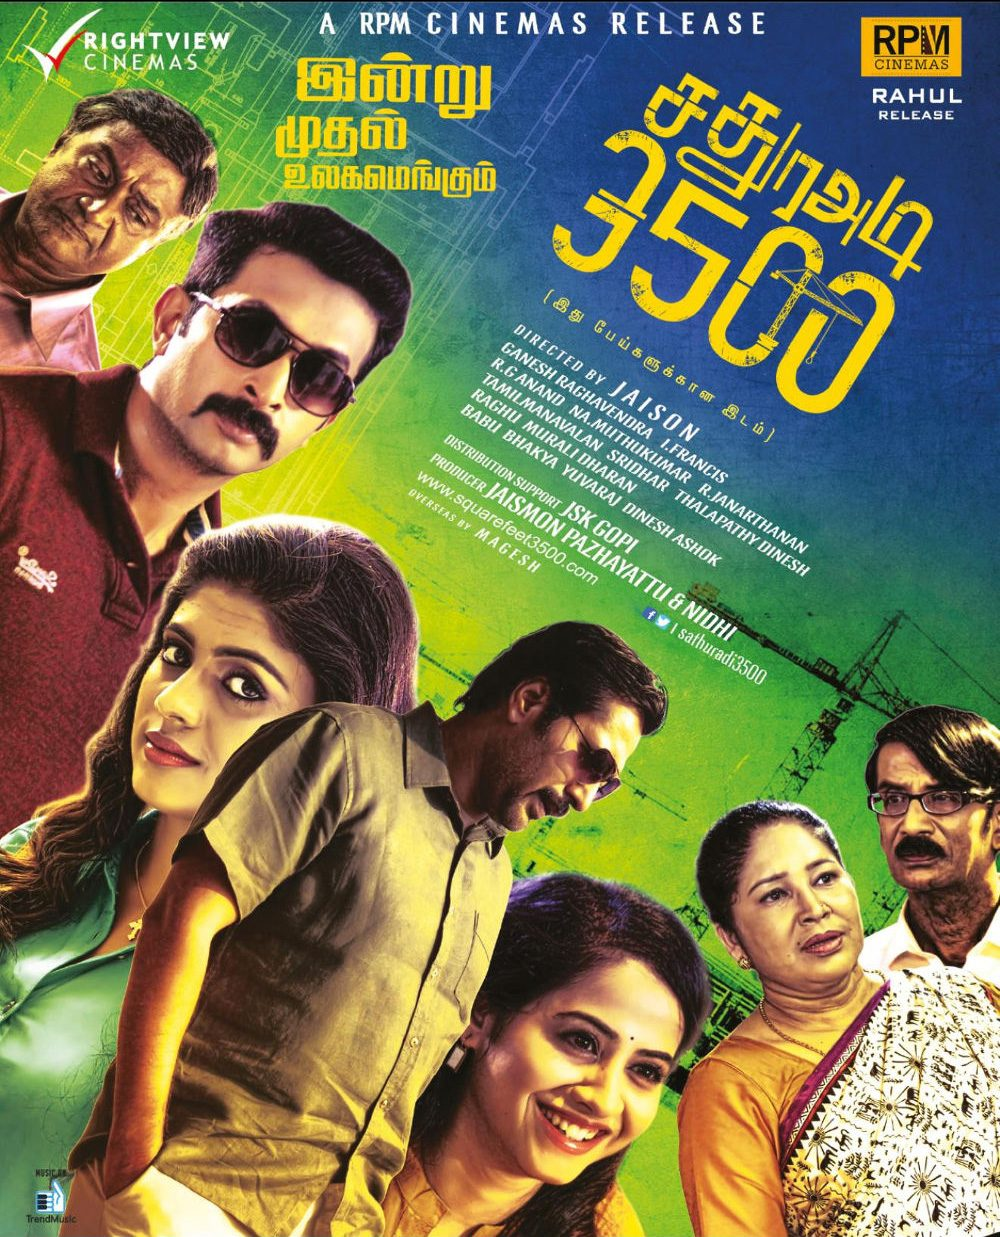 Sathura-Adi-3500,-Tamil-Film-Streaming-Online-on-Zee5,-release-date-31st-July-2020